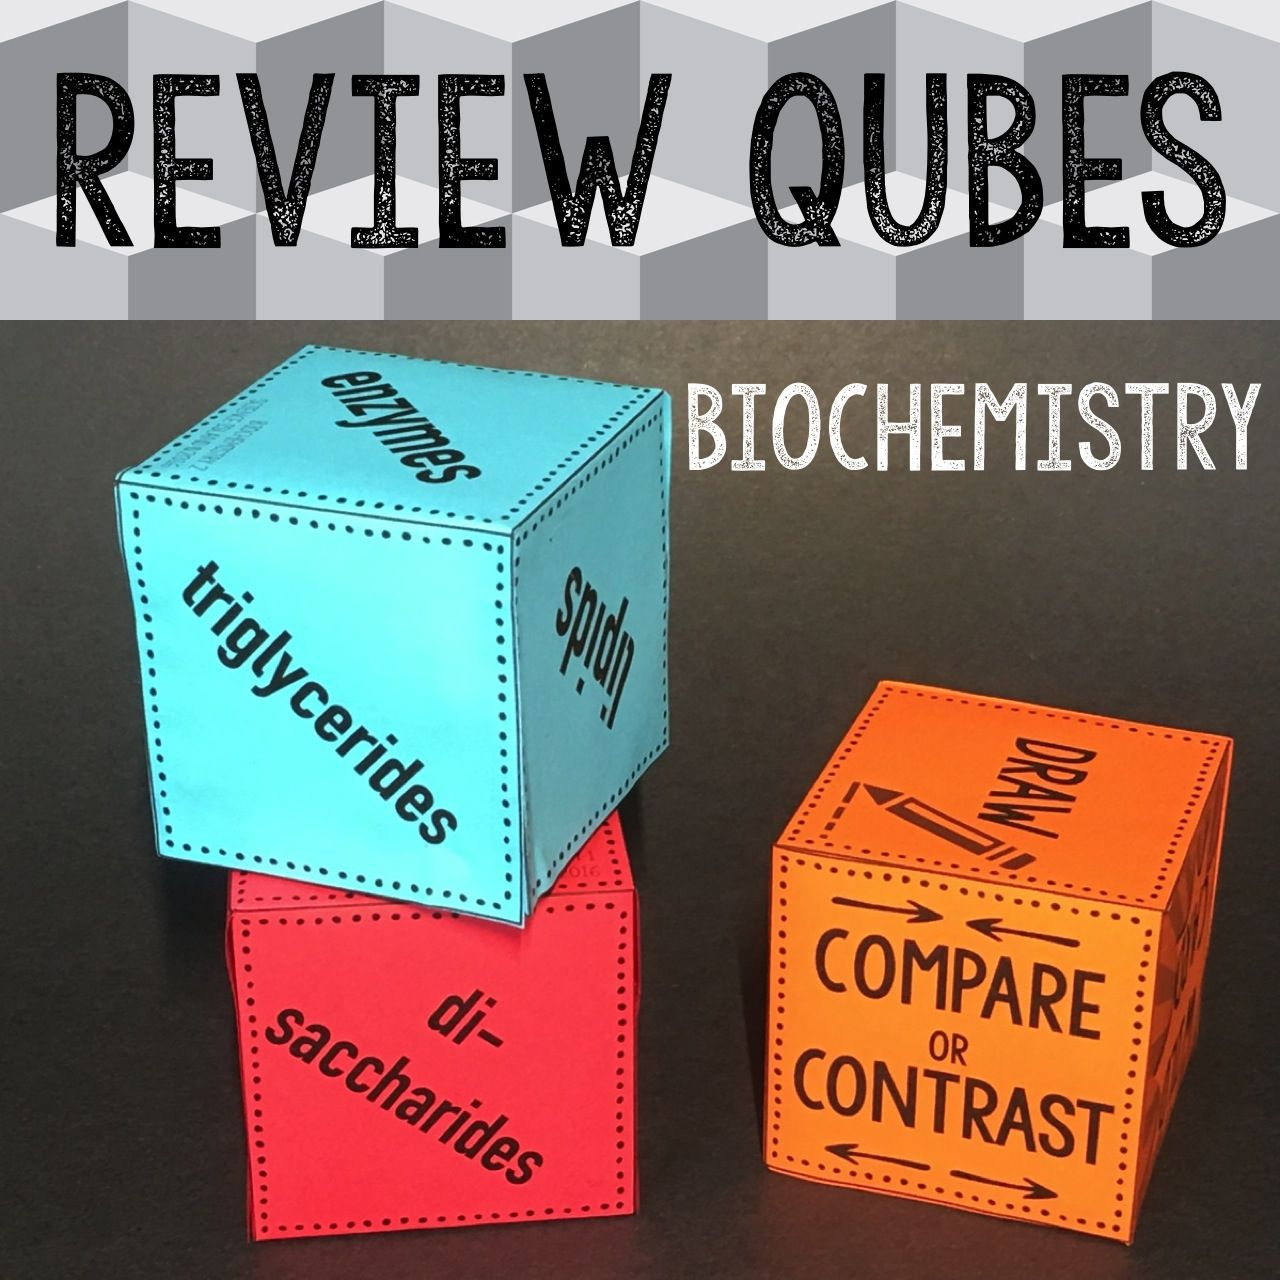 biochemistry review qubes life science teaching biology and ap review qubes are the latest craze for your biology class this biochemistry review game uses